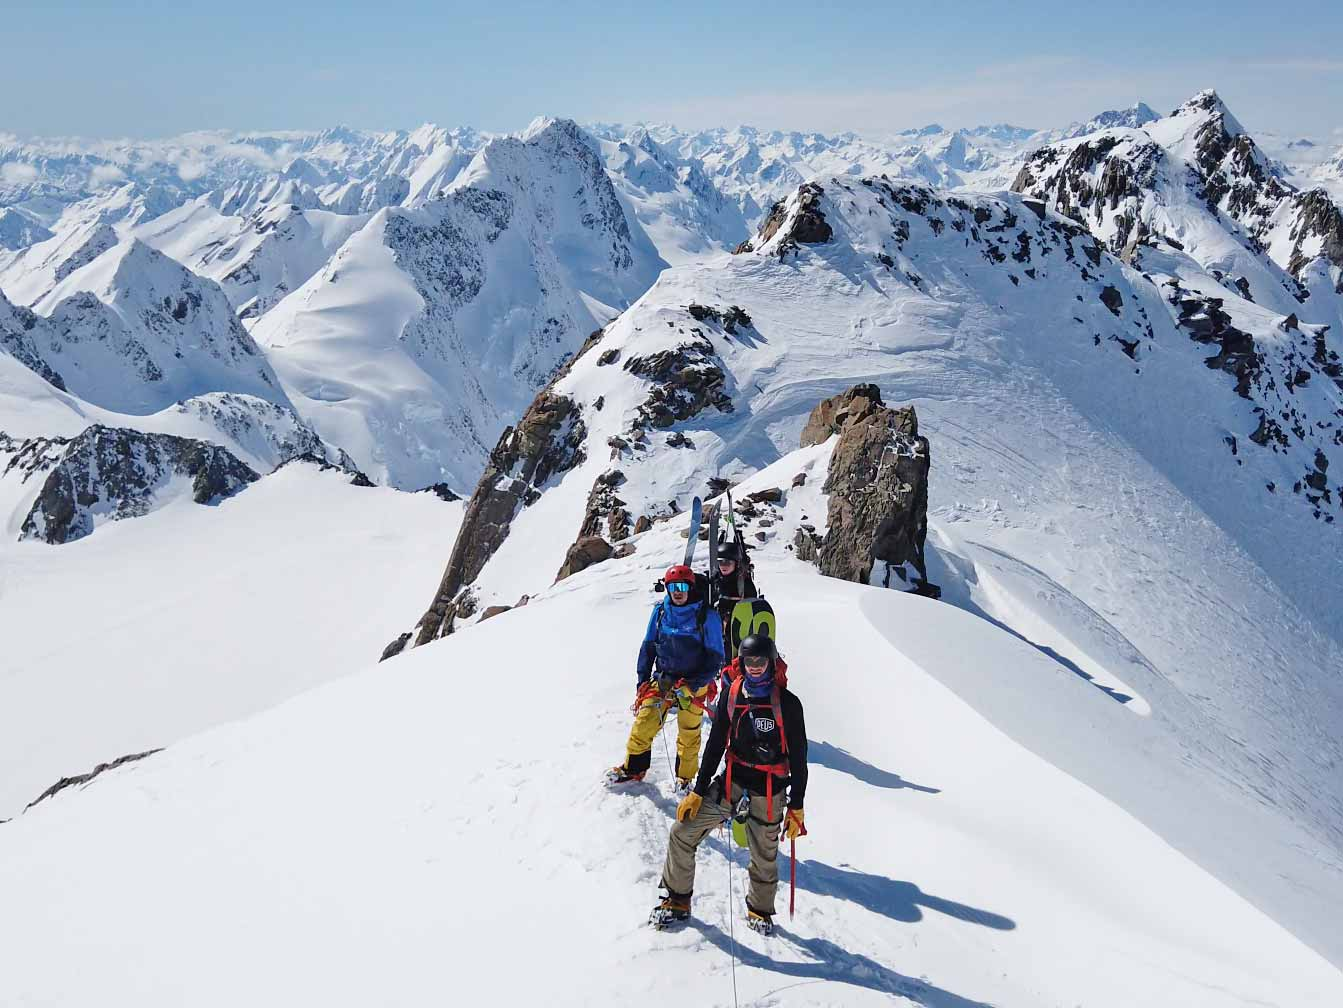 Man skiing downhill on a 3 Day Backcountry Skiing trip